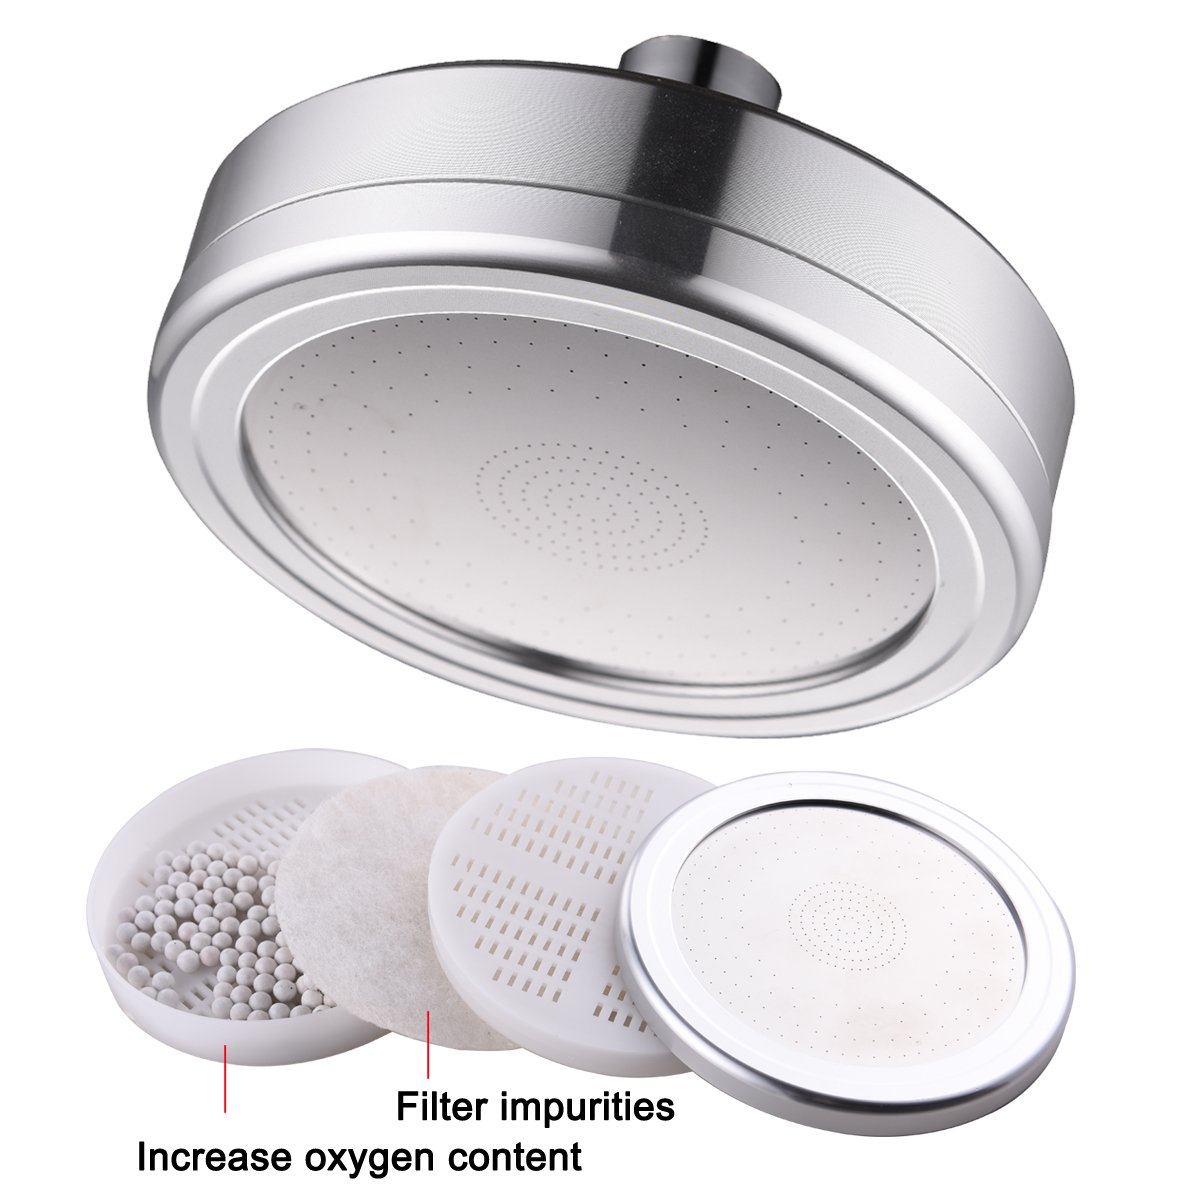 CIENCIA Shower Head with Filters Rainfall Overhead Shower High Pressure Fixed Showerhead Aluminum Filtered Shower Head 5'', BD141A